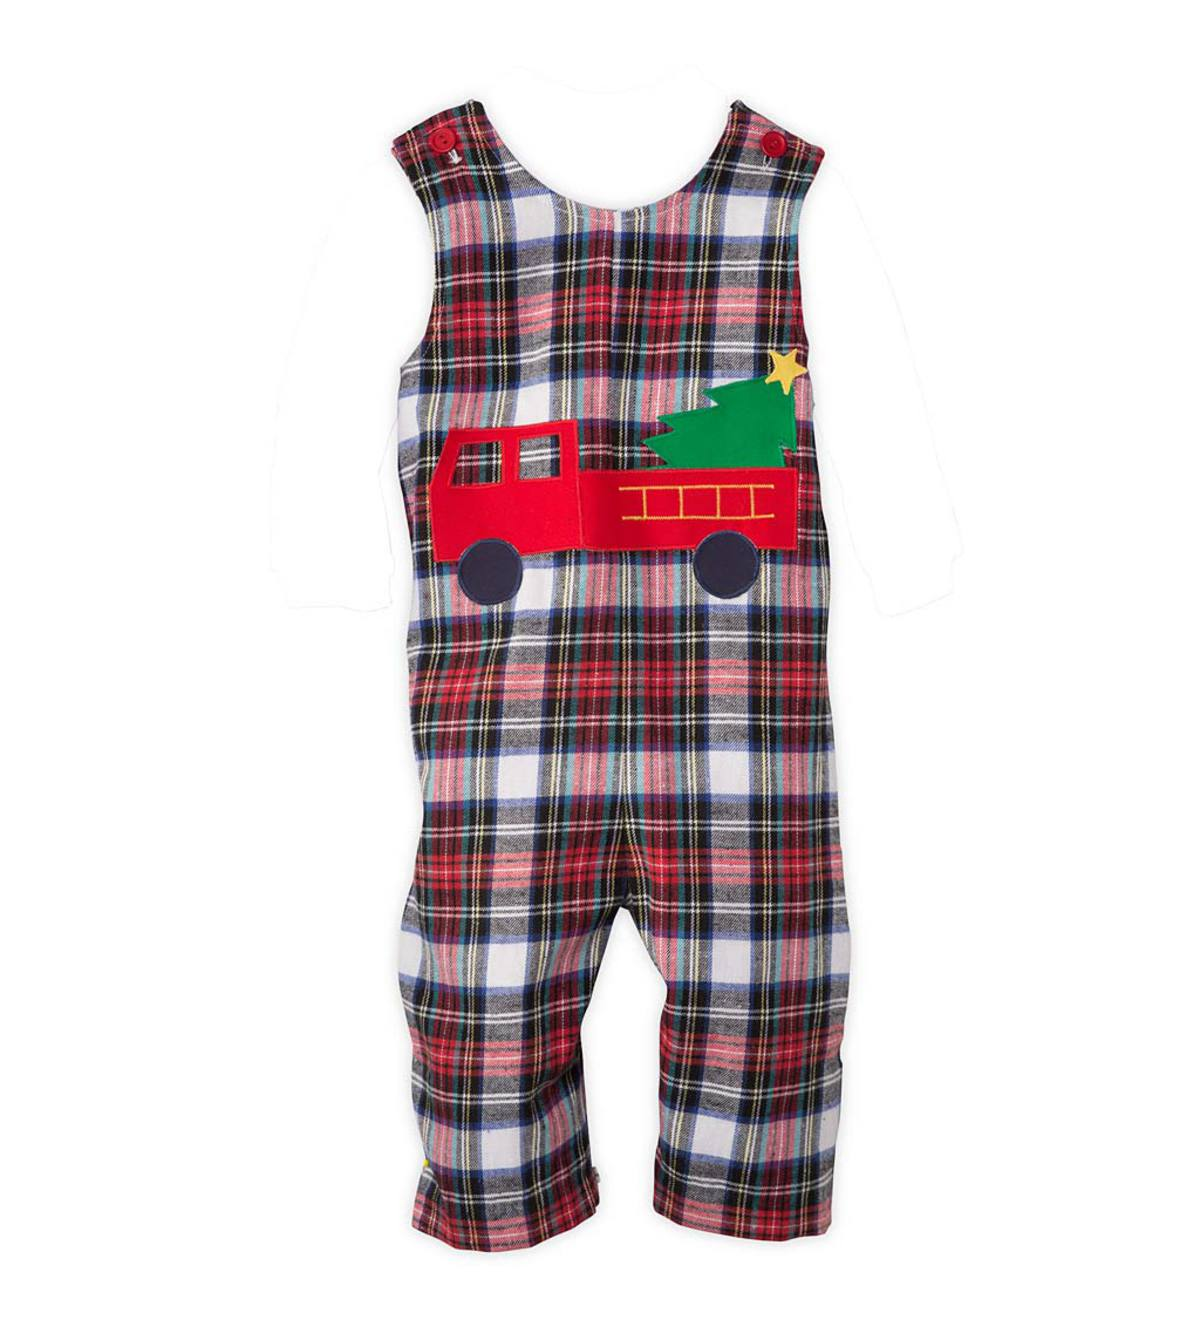 Plaid One-Piece - Red - 24M